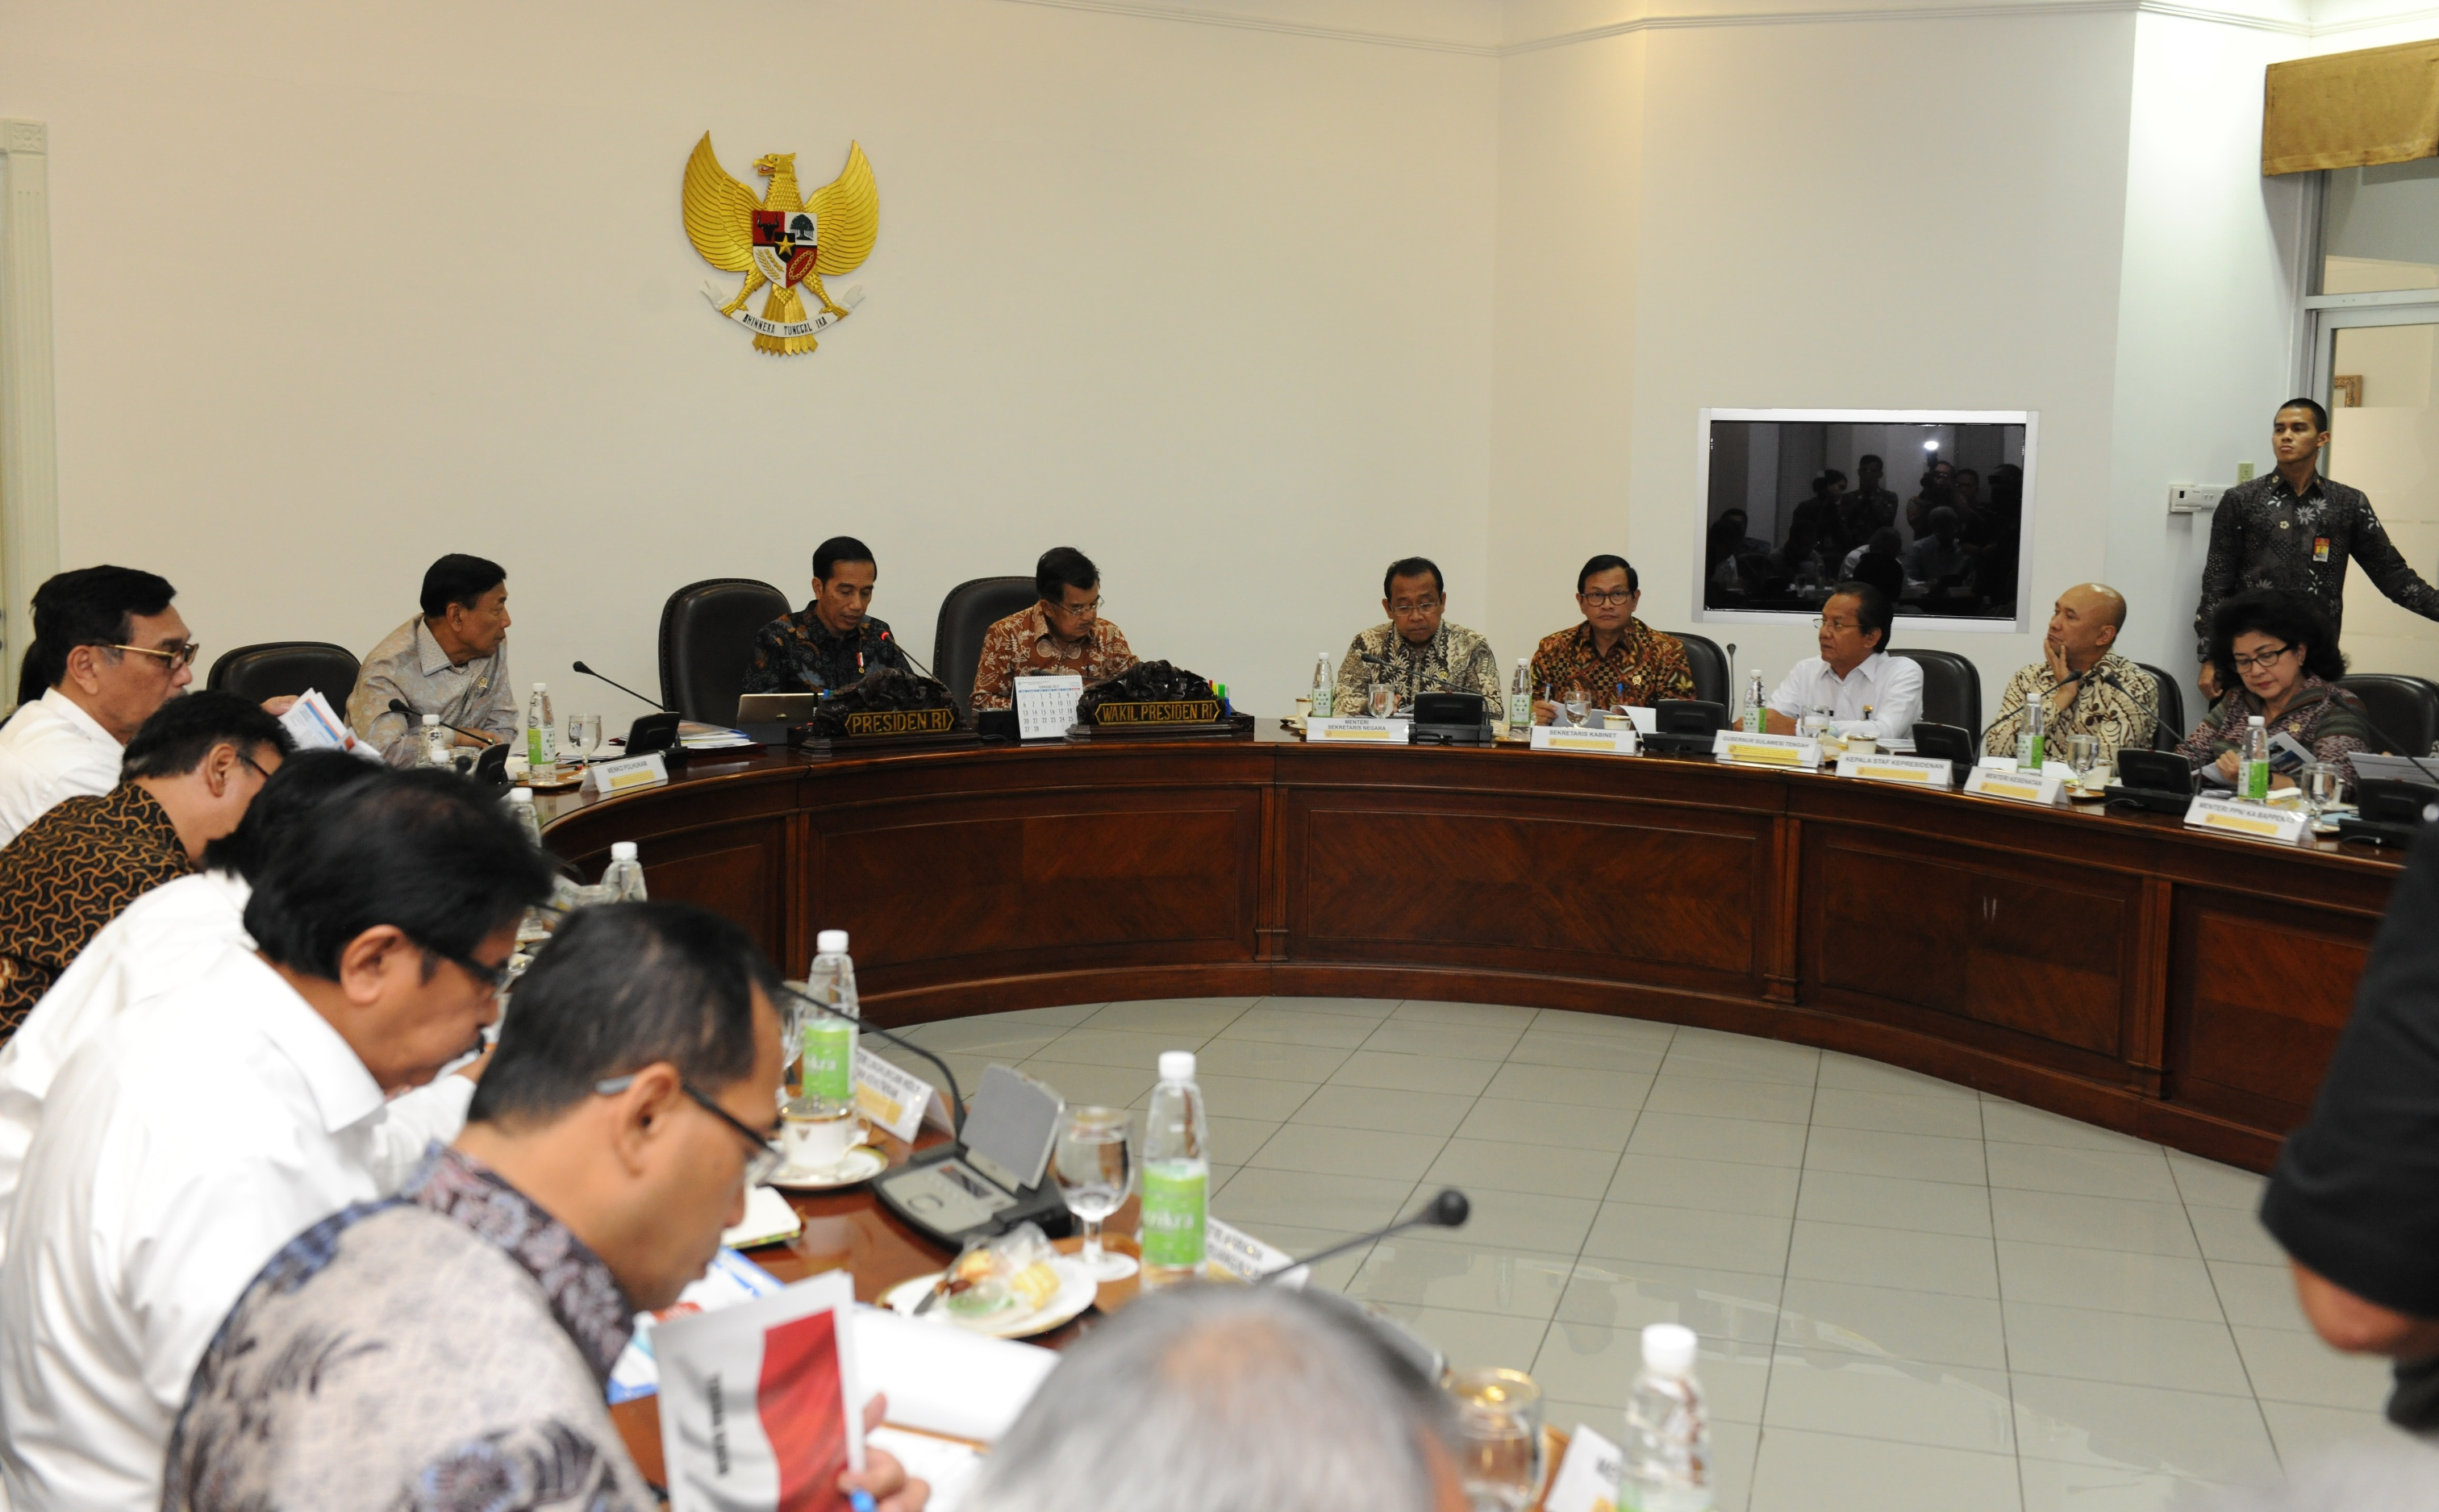 President Jokowi, accompanied by Vice President Jusuf Kalla, presides over a limited cabinet meeting on the development in Central Sulawesi at the Presidential Office, Thursday (9/3 (Photo by: JAY/Public Relations Division)